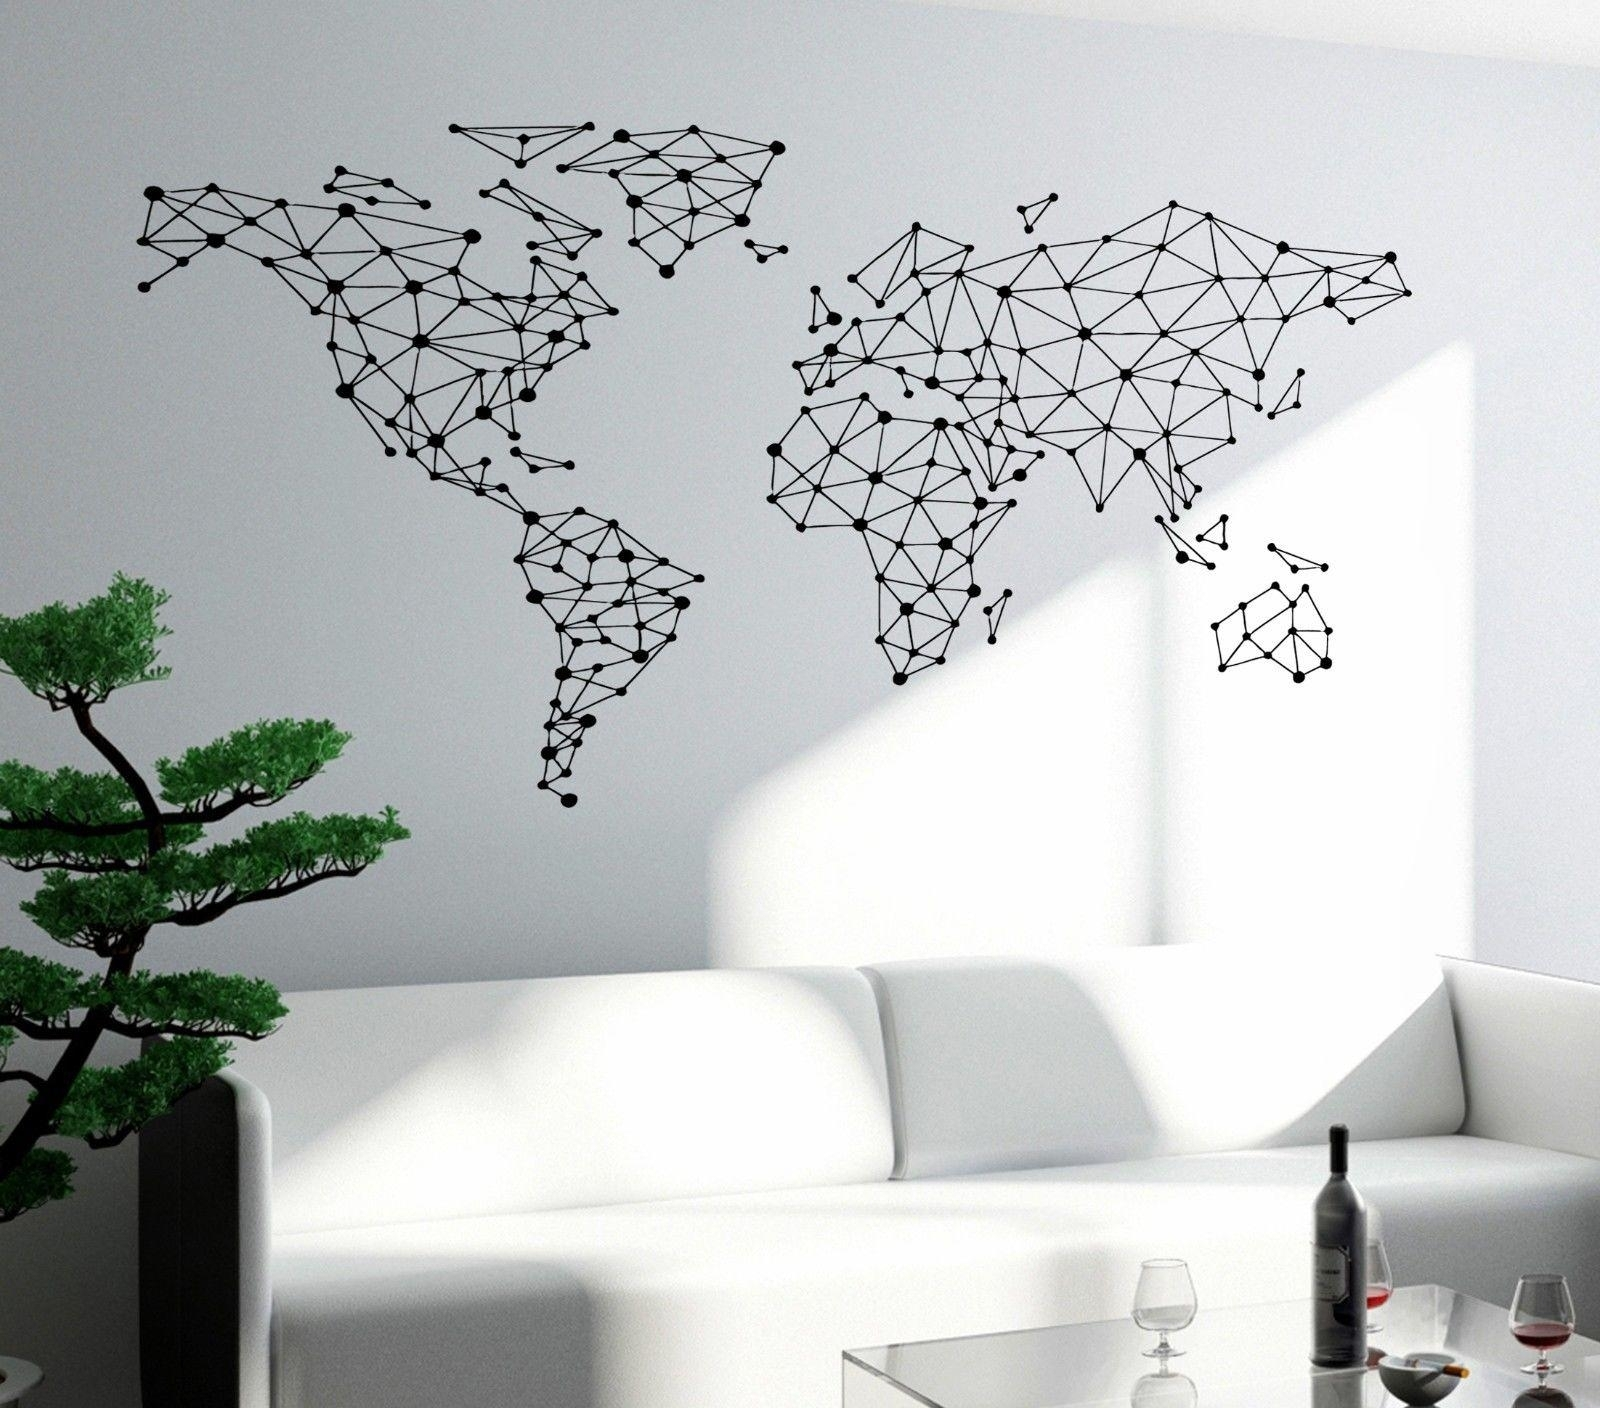 Wondrous Inspration Amazon Wall Art Best Of World Map Dahlia S Home Throughout Most Current Diy World Map Wall Art (Gallery 15 of 20)